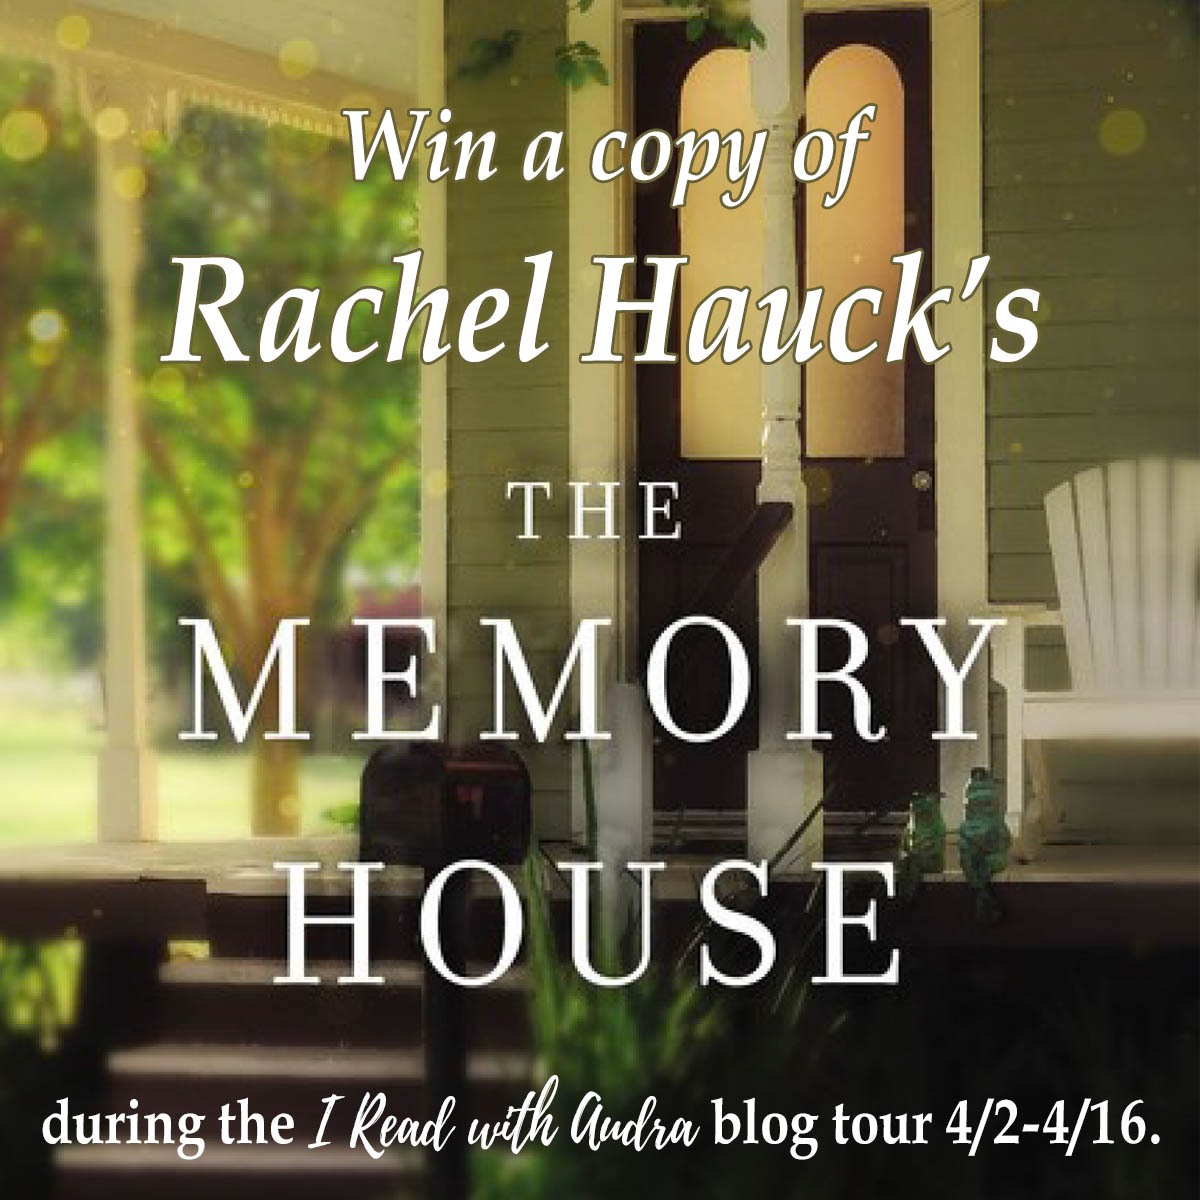 THE MEMORY HOUSE Blog Tour